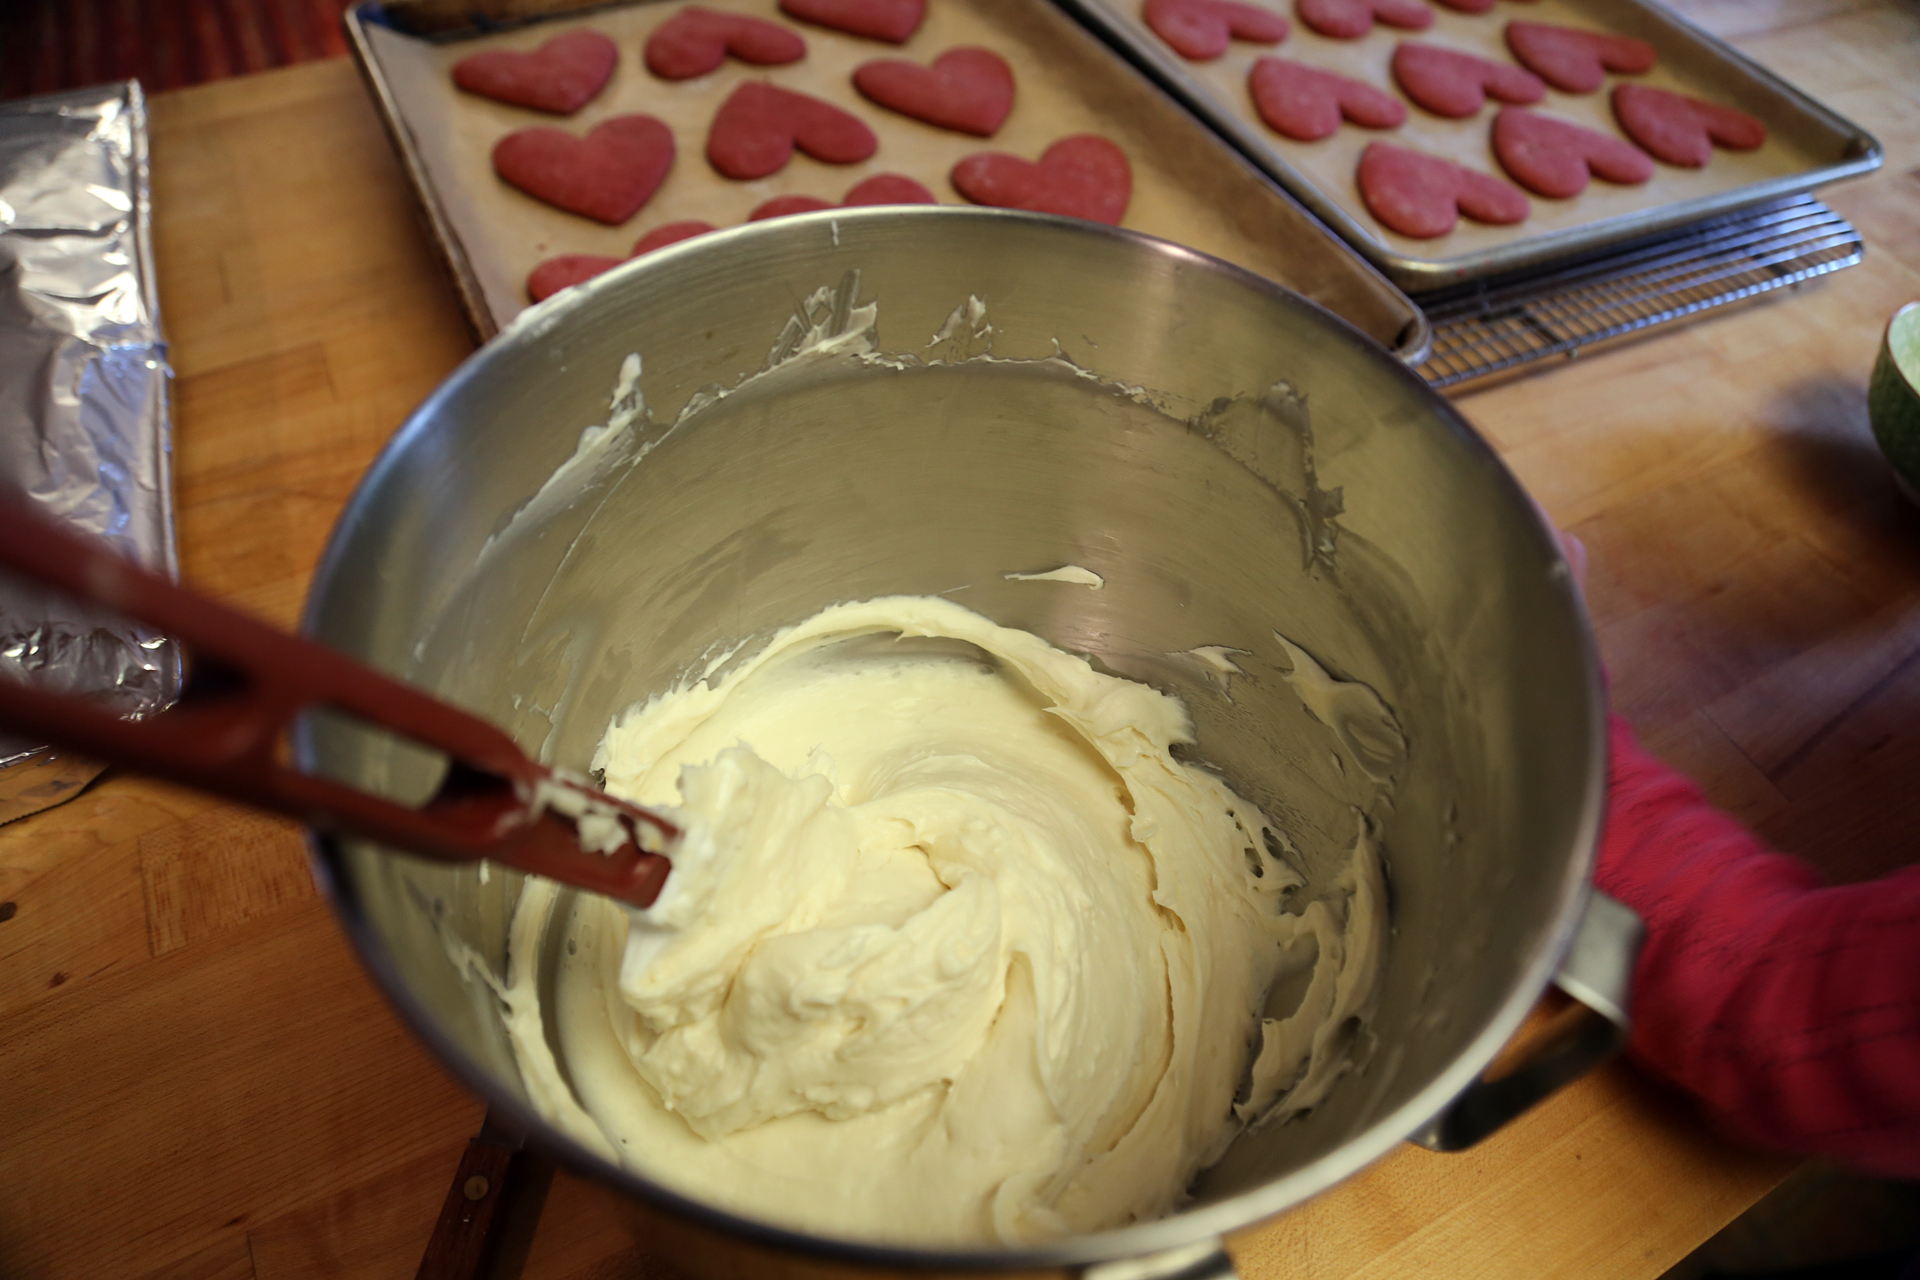 Prepare the frosting to be used right away.